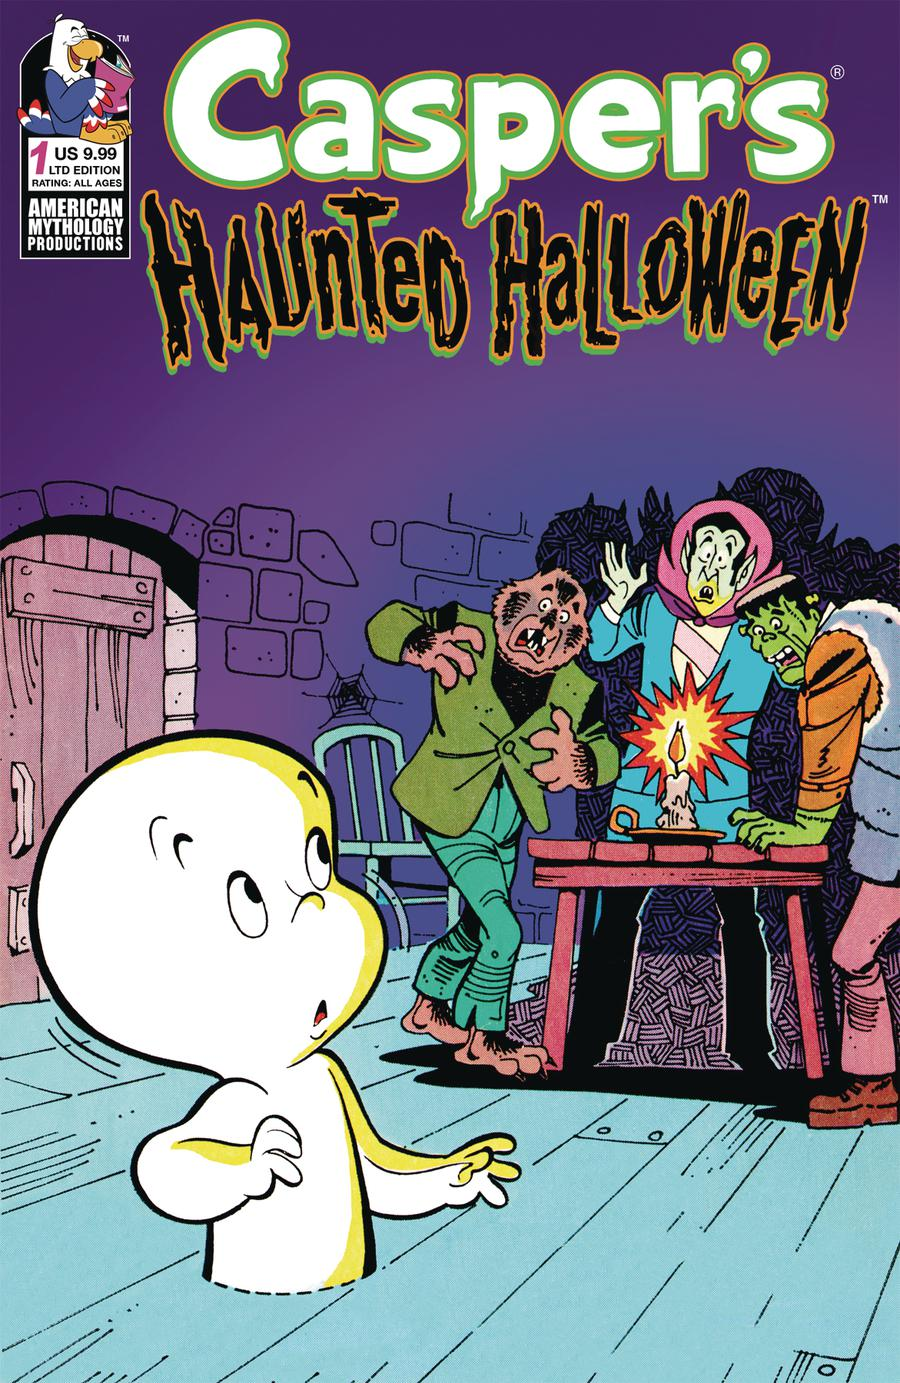 Caspers Haunted Halloween #1 Cover B Limited Edition Retro Animation Variant Cover